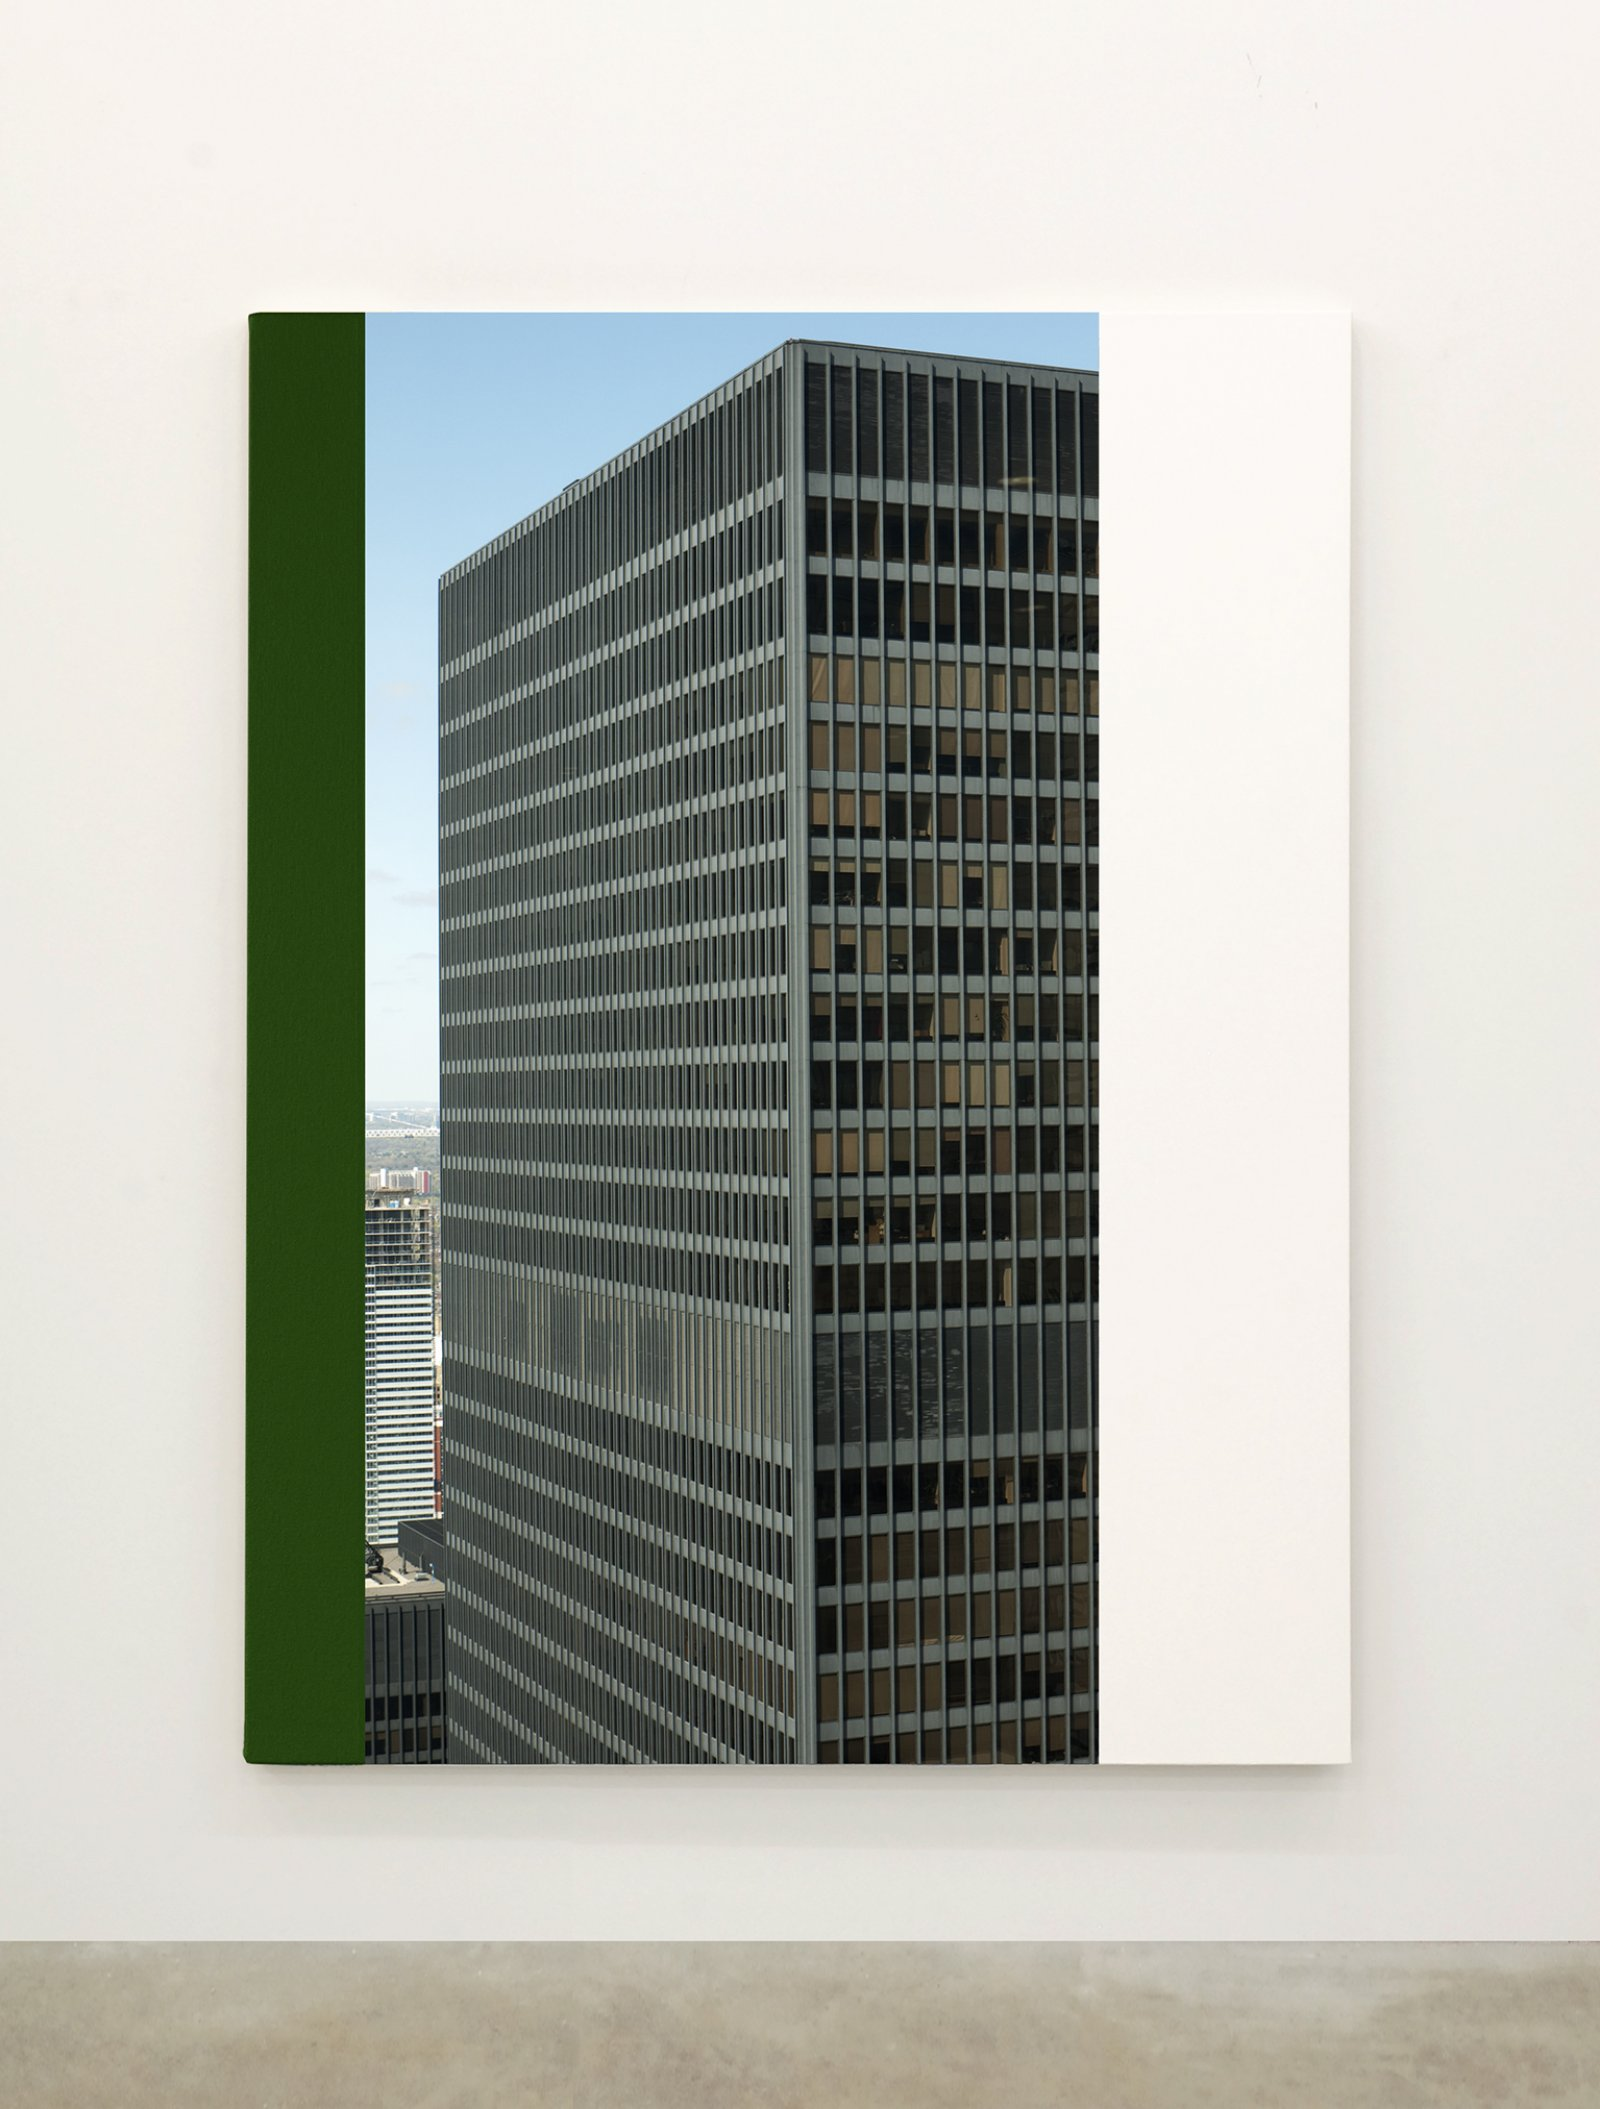 Ian Wallace,Abstract Painting XII(The Financial District), 2010,12 photolaminate with acrylic on canvas panels, each 96 x 72 in. (244 x 183 cm)